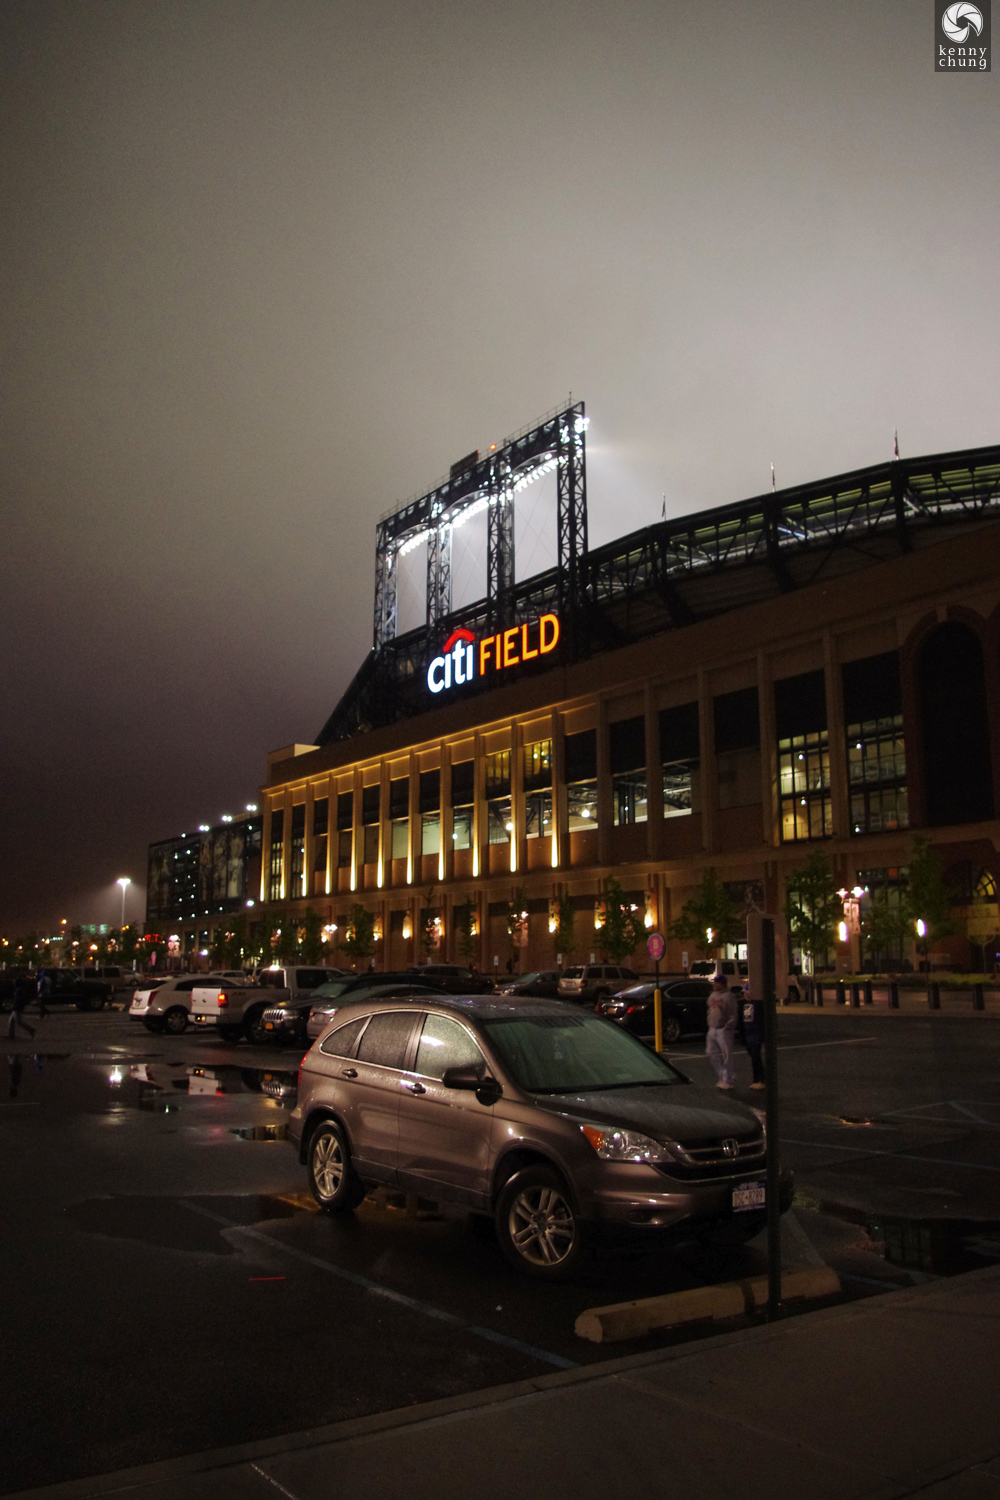 Leaving the Citi Field parking lot